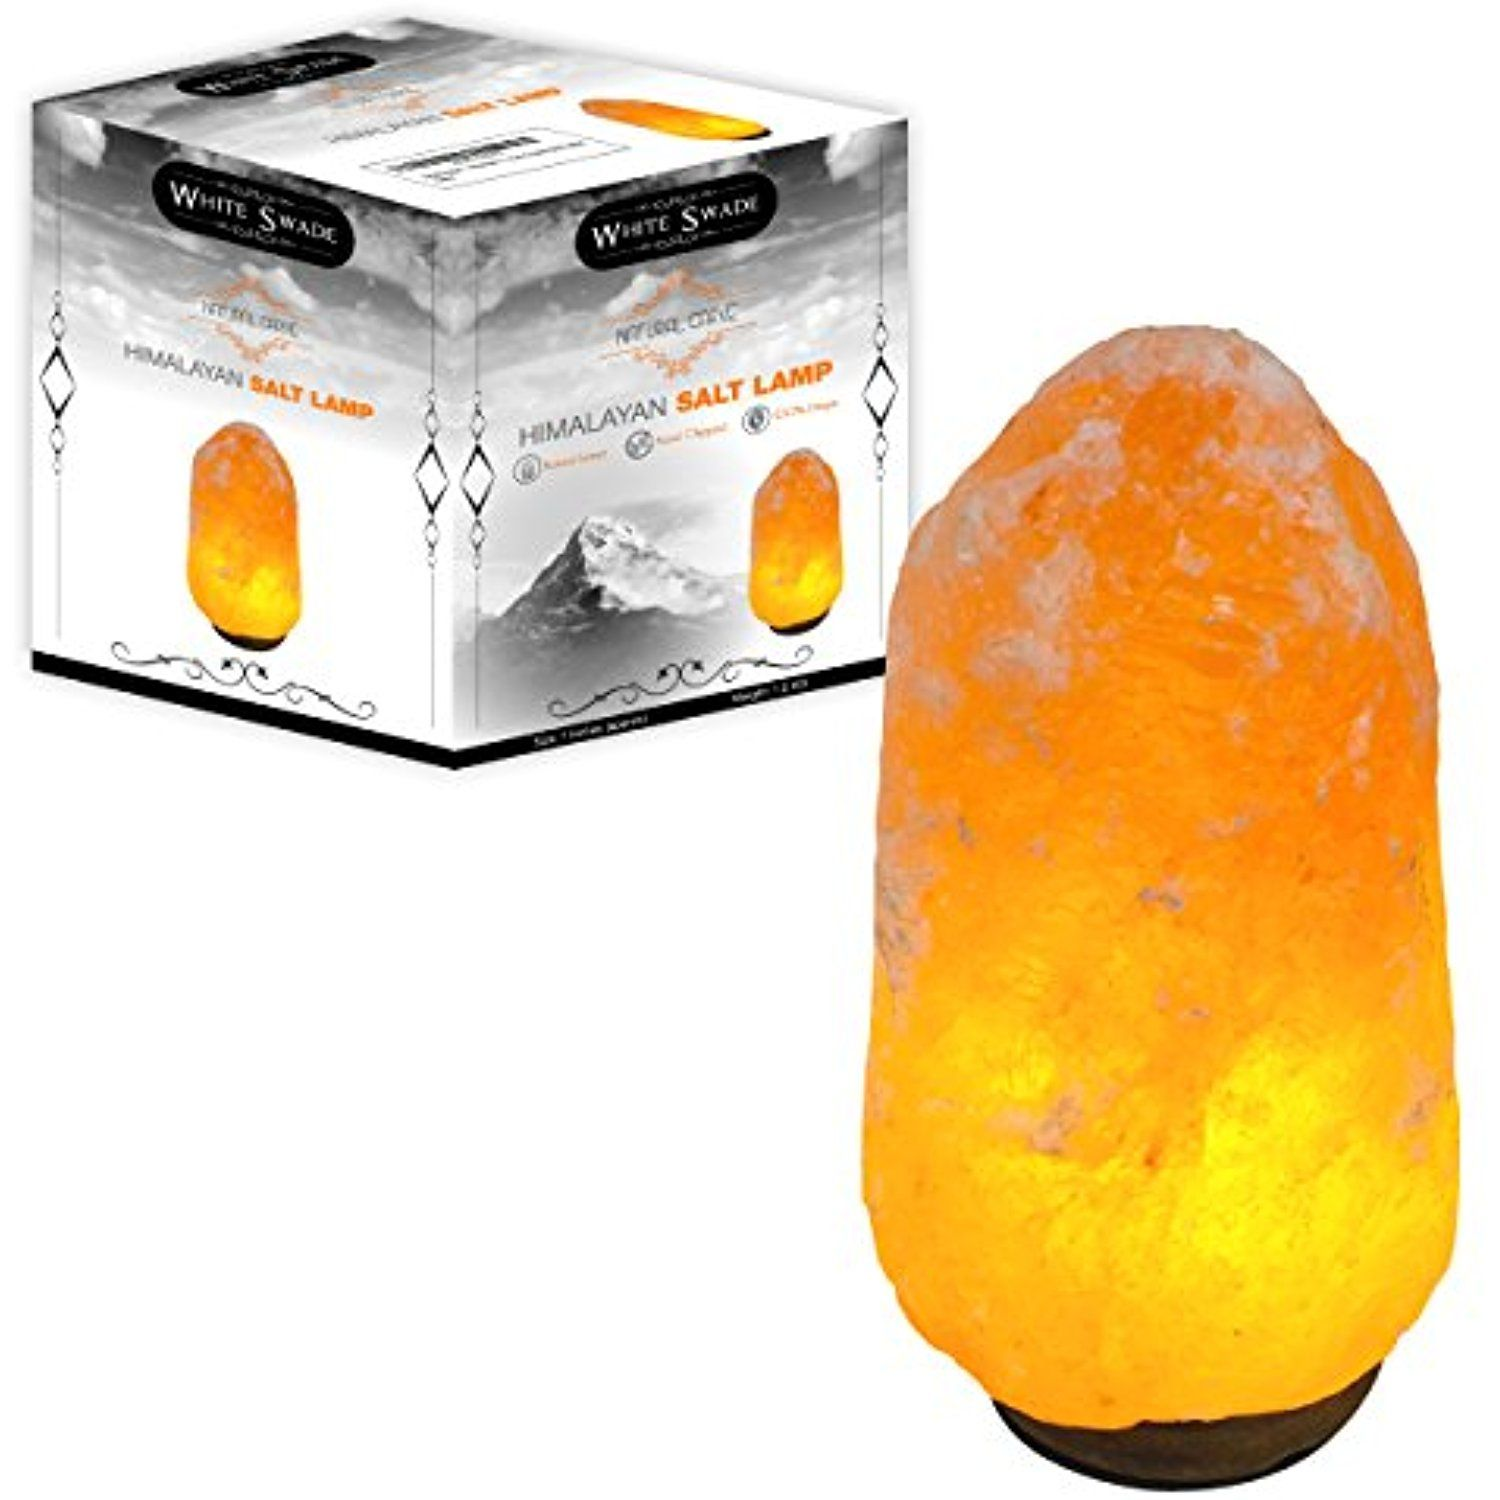 "Genuine Himalayan Salt Lamp Cool Whiteswade 7"" Himalayan Salt Lamp With Dimmer Switch Genuine Neem 2018"